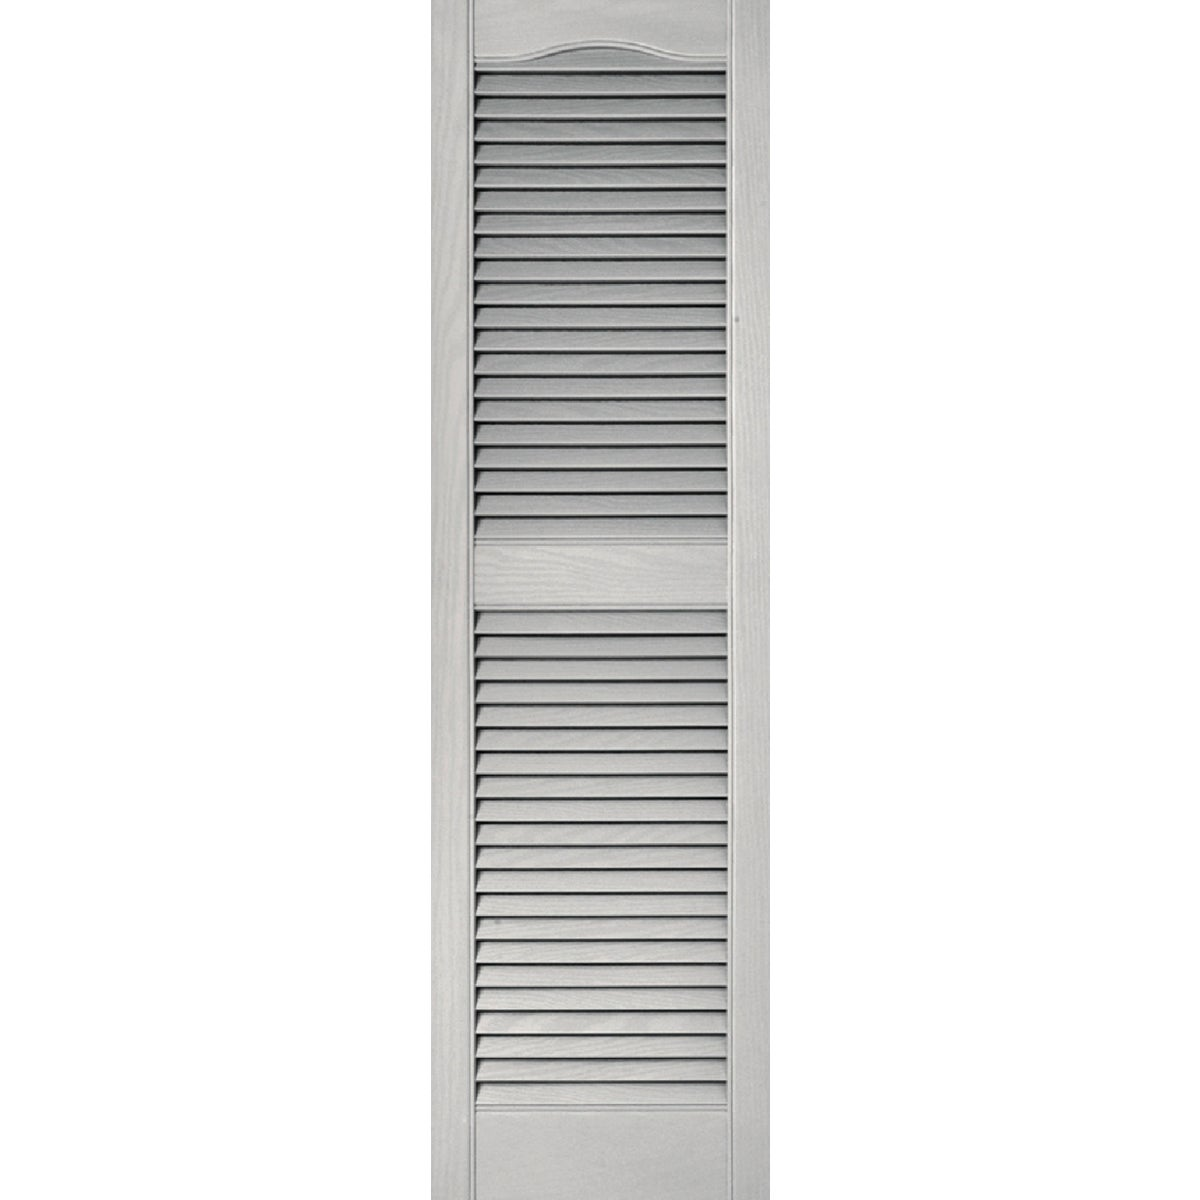 15X52 PBL LOUVER SHUTTER - 020140052030 by The Tapco Group